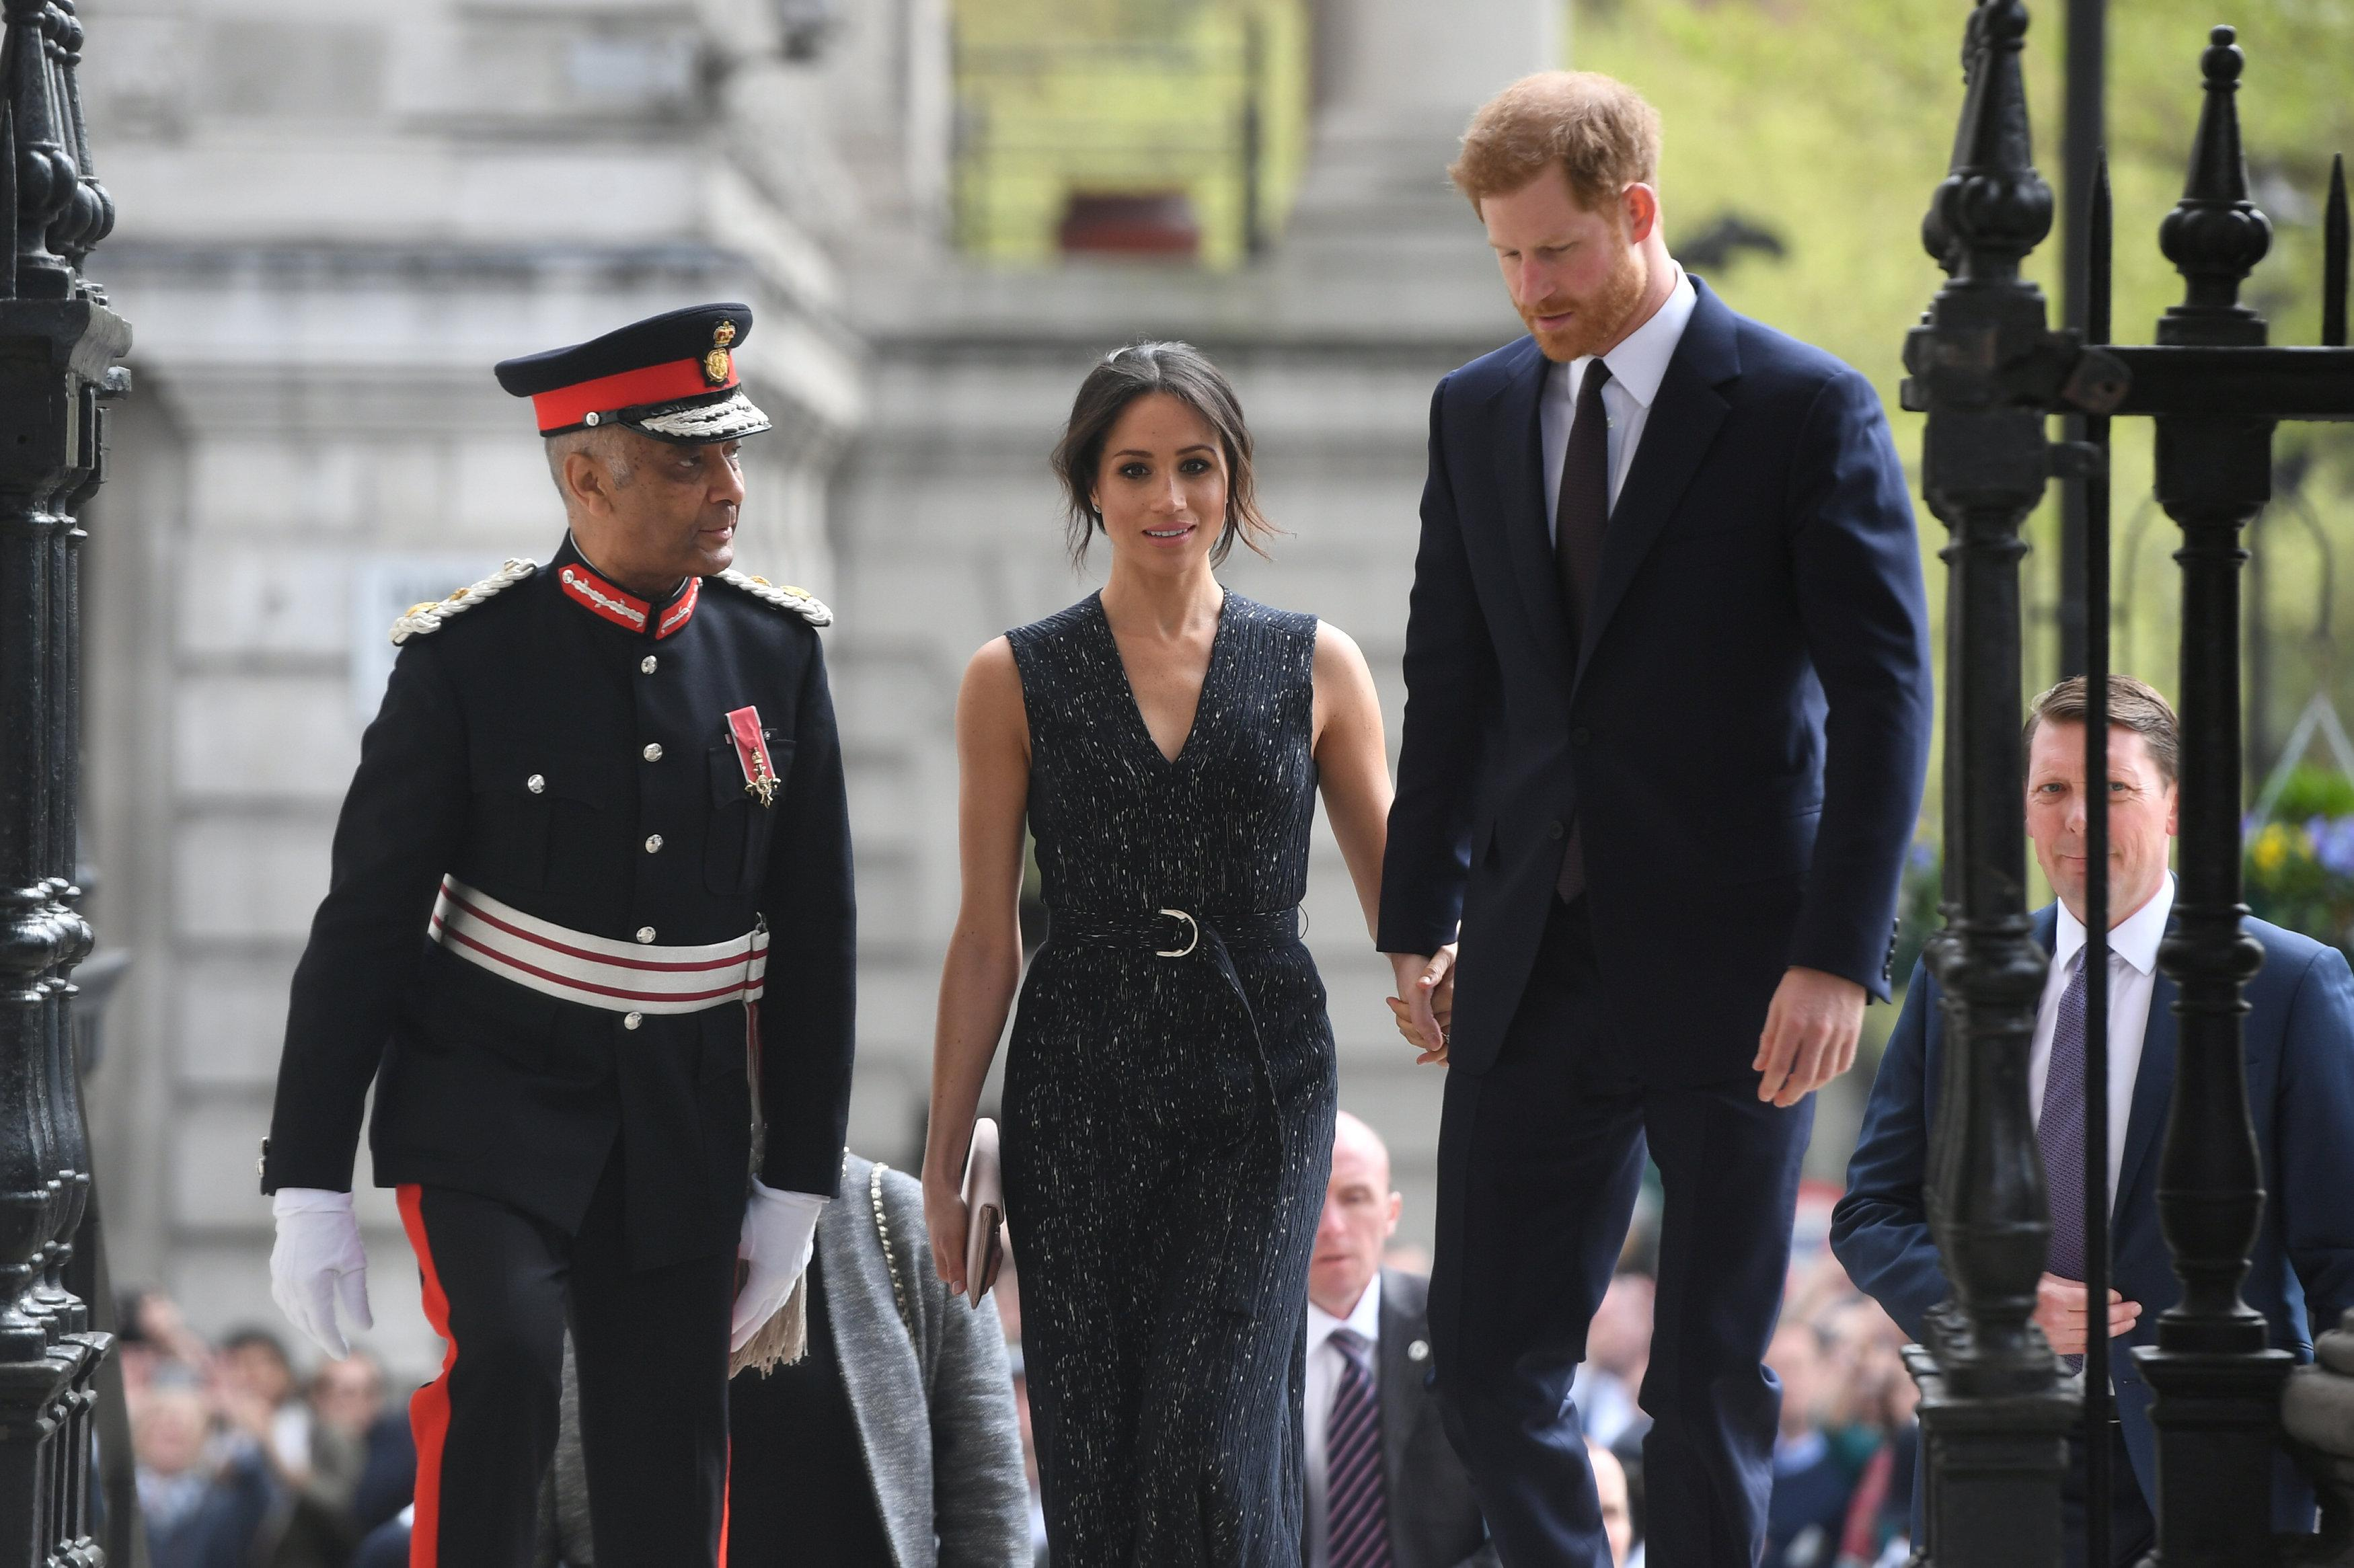 Britain's Prince Harry and his fiancee Meghan Markle arrive at a service at St Martin-in-The Fields to mark 25 years since Stephen Lawrence was killed in a racially motivated attack, in London, Britain, April 23, 2018. Victoria Jones/Pool via Reuters